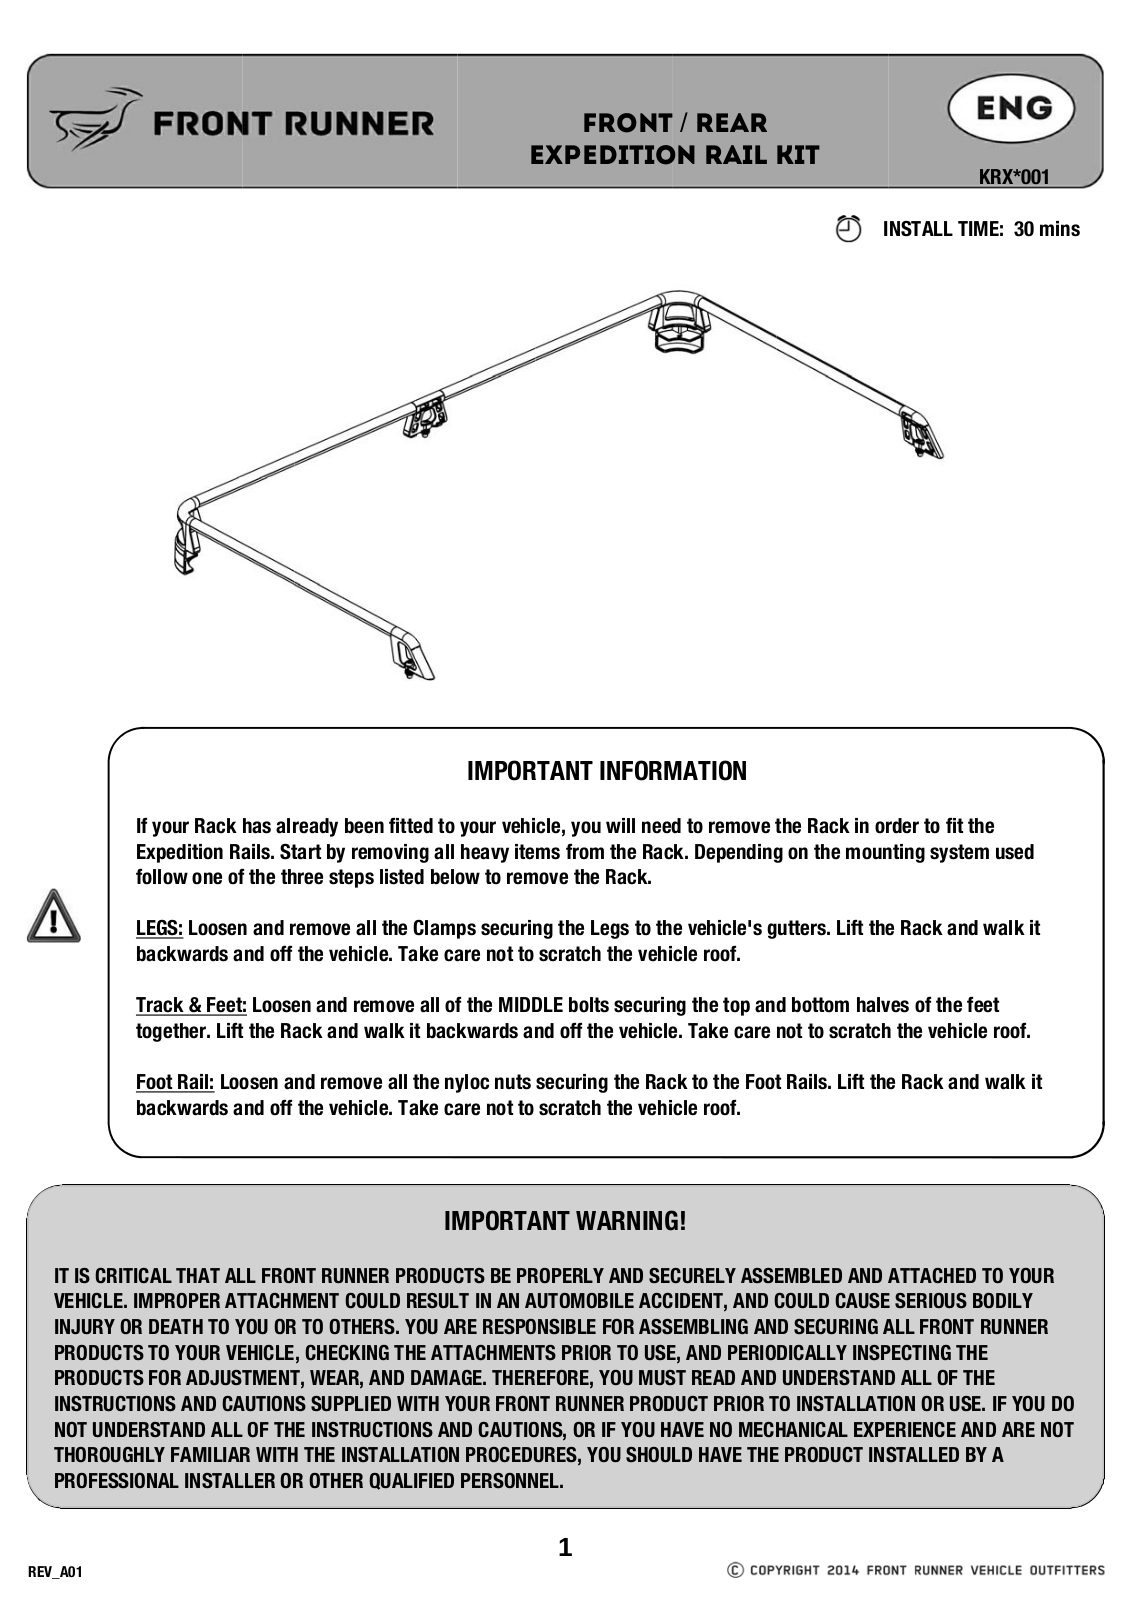 Installation instructions for KRXD002